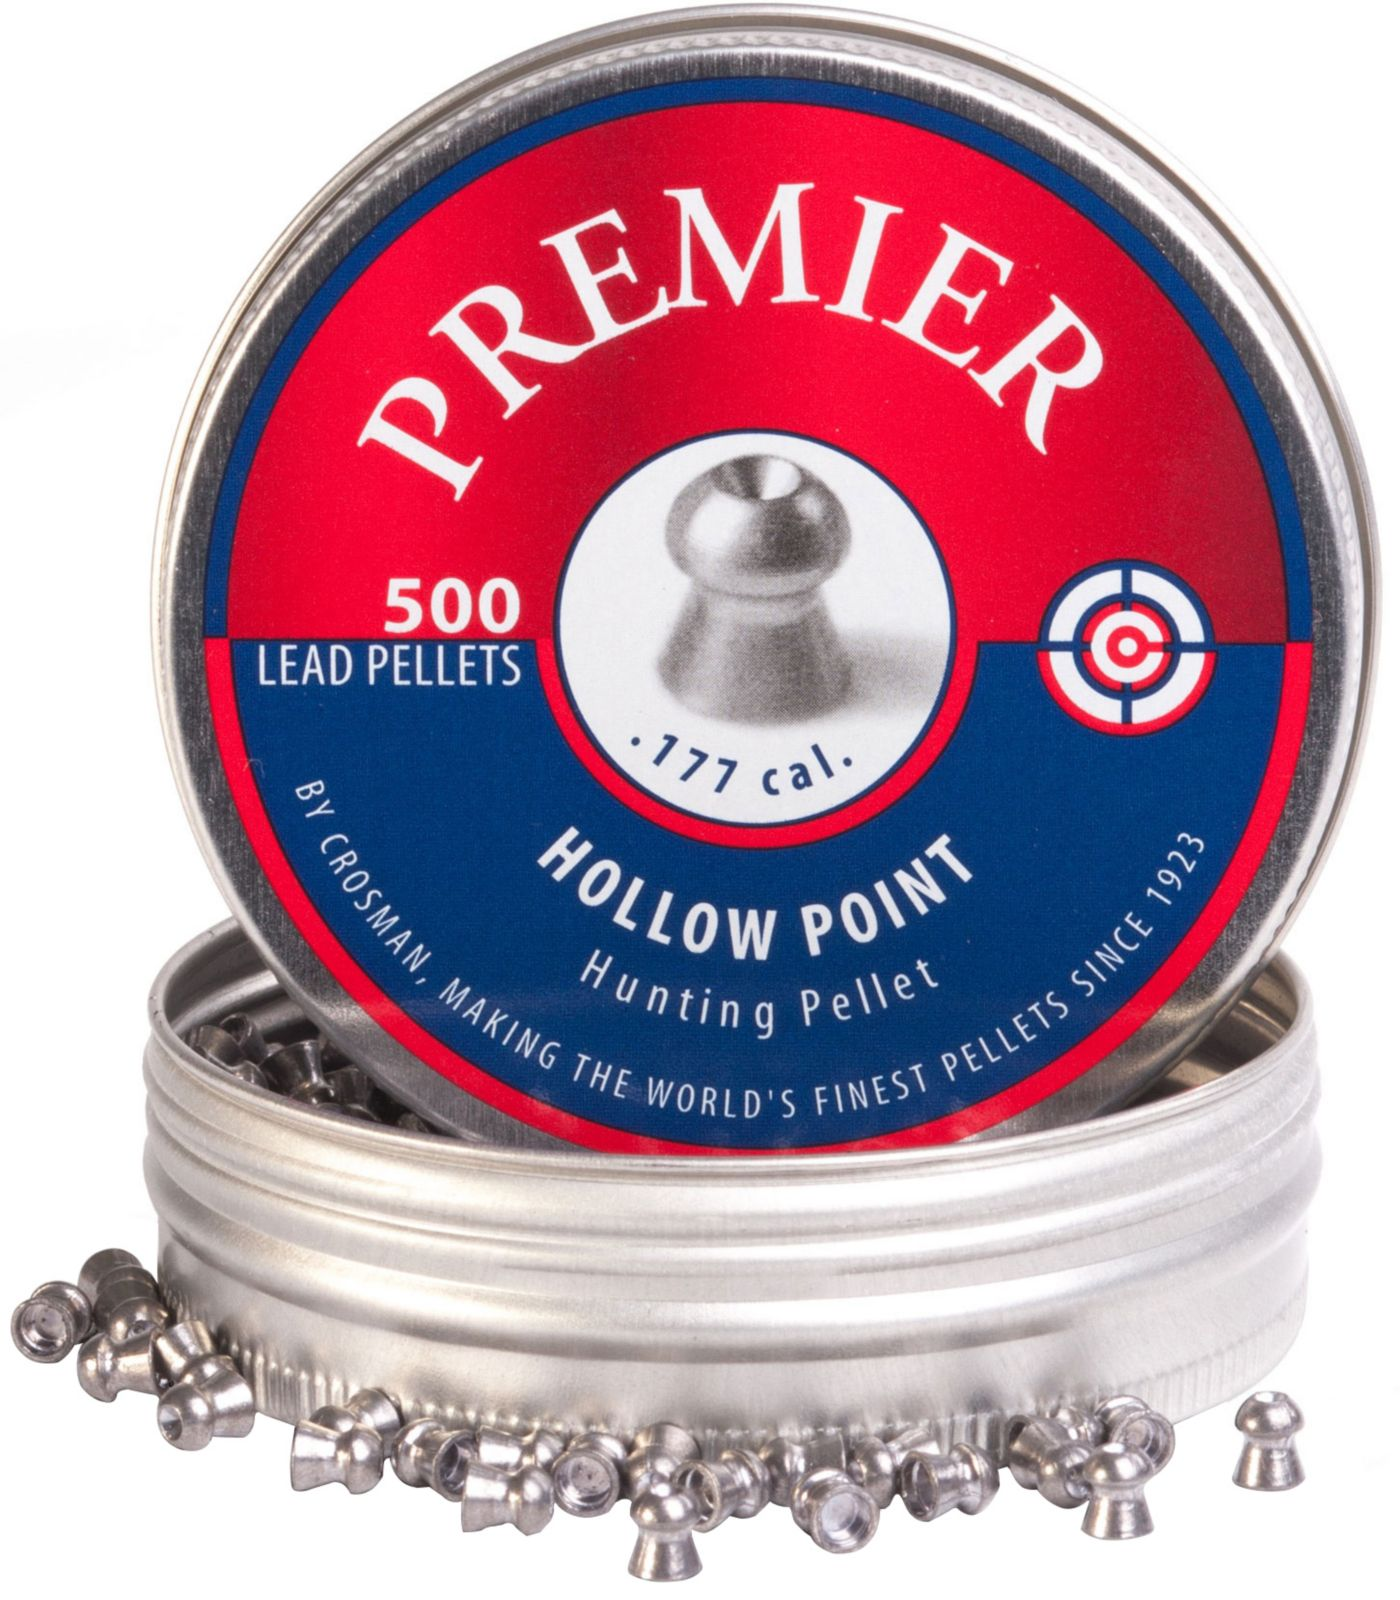 Crosman Premier Hollow Point .177 Caliber Pellets - 500 Count